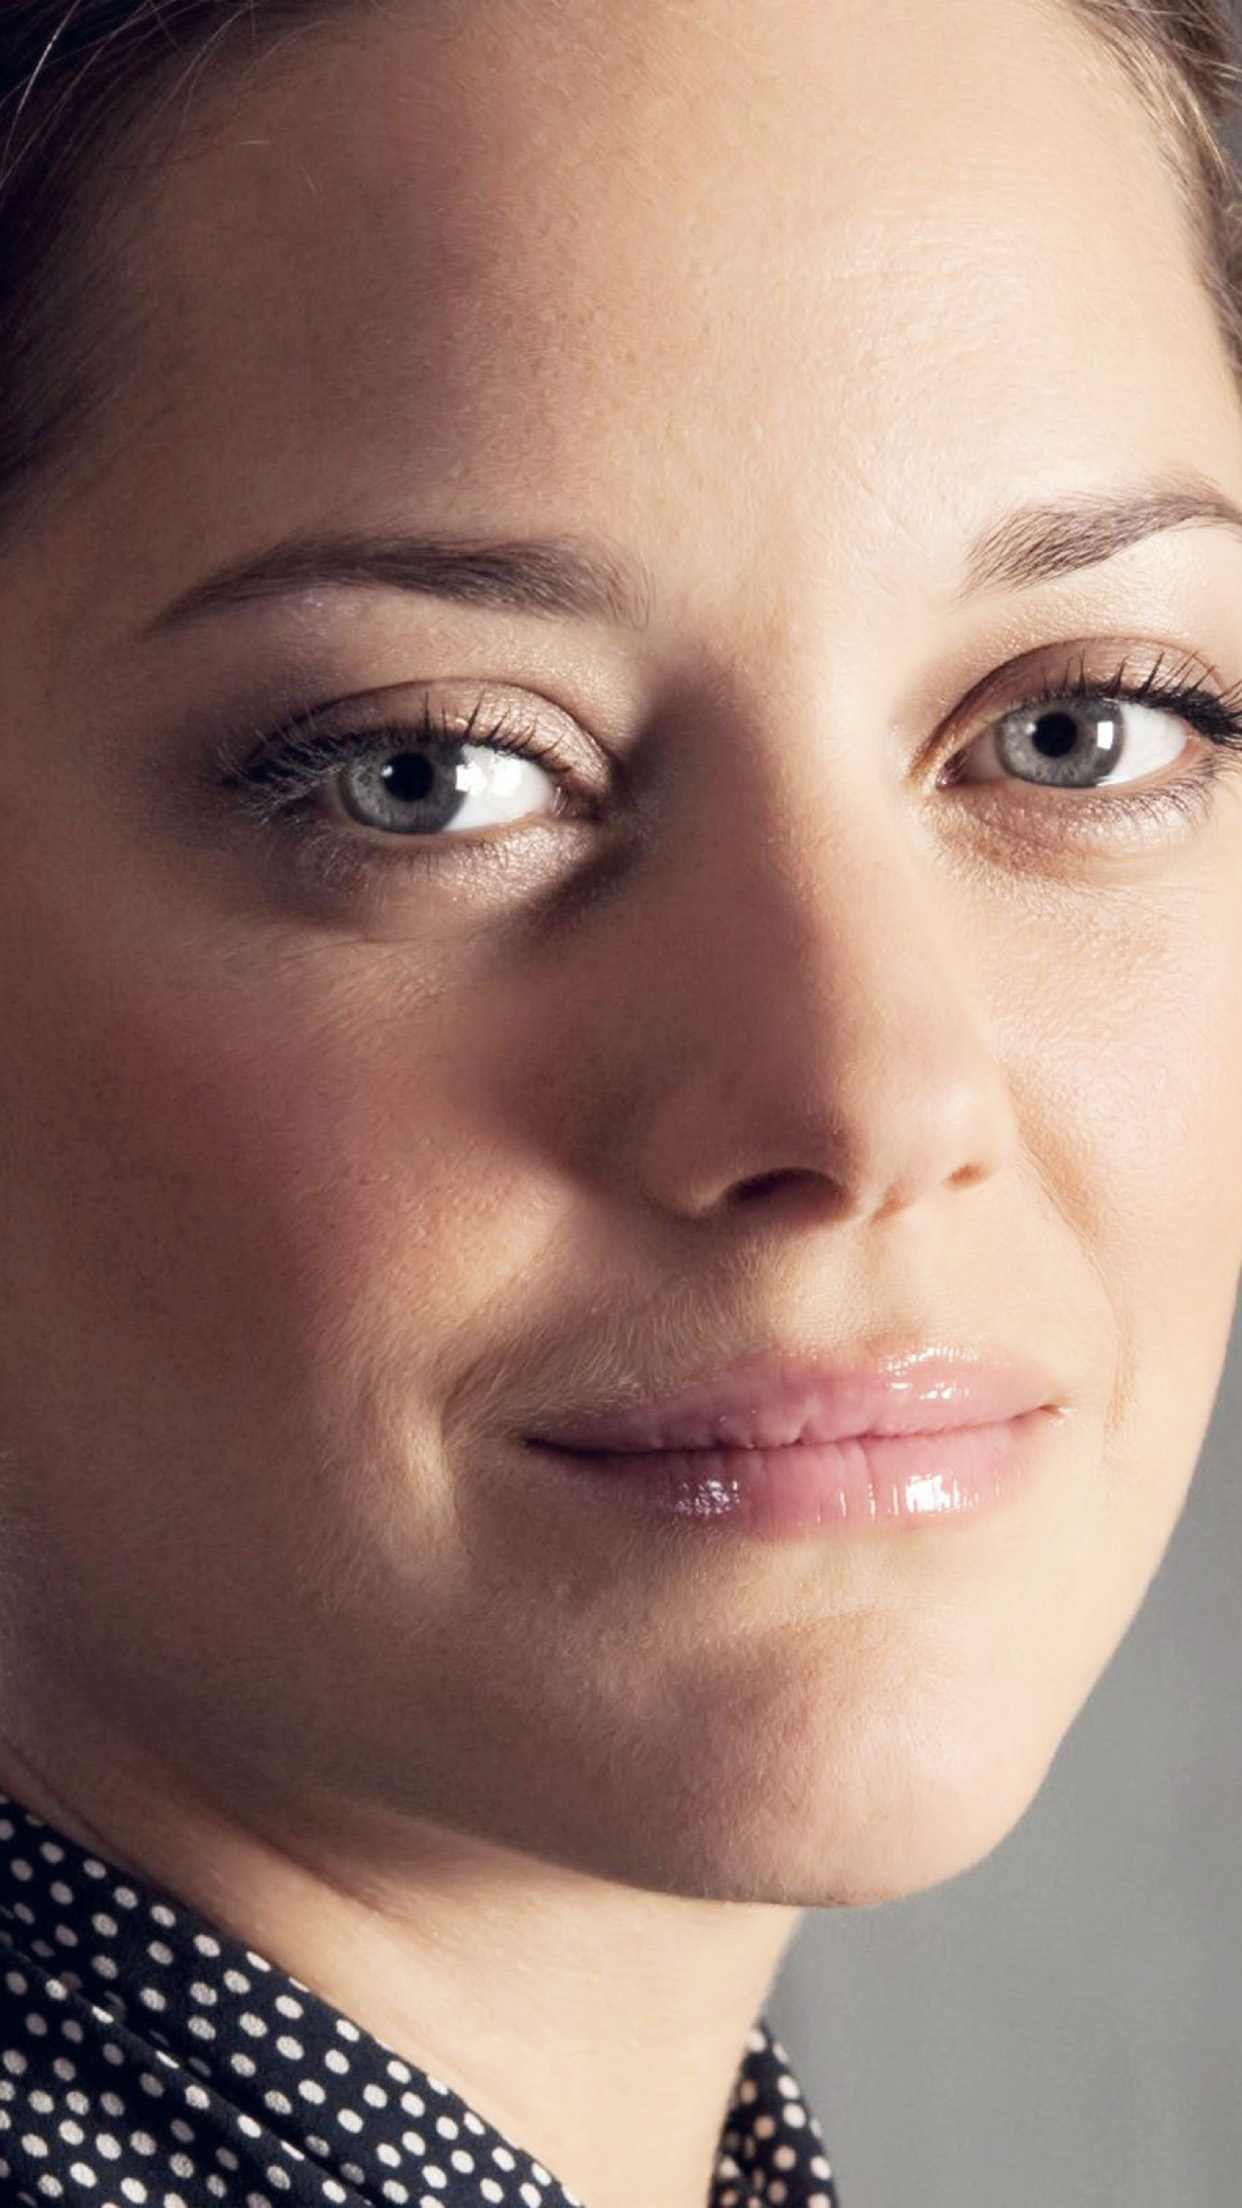 Marion Cotillard Actor Celebrity Android wallpaper